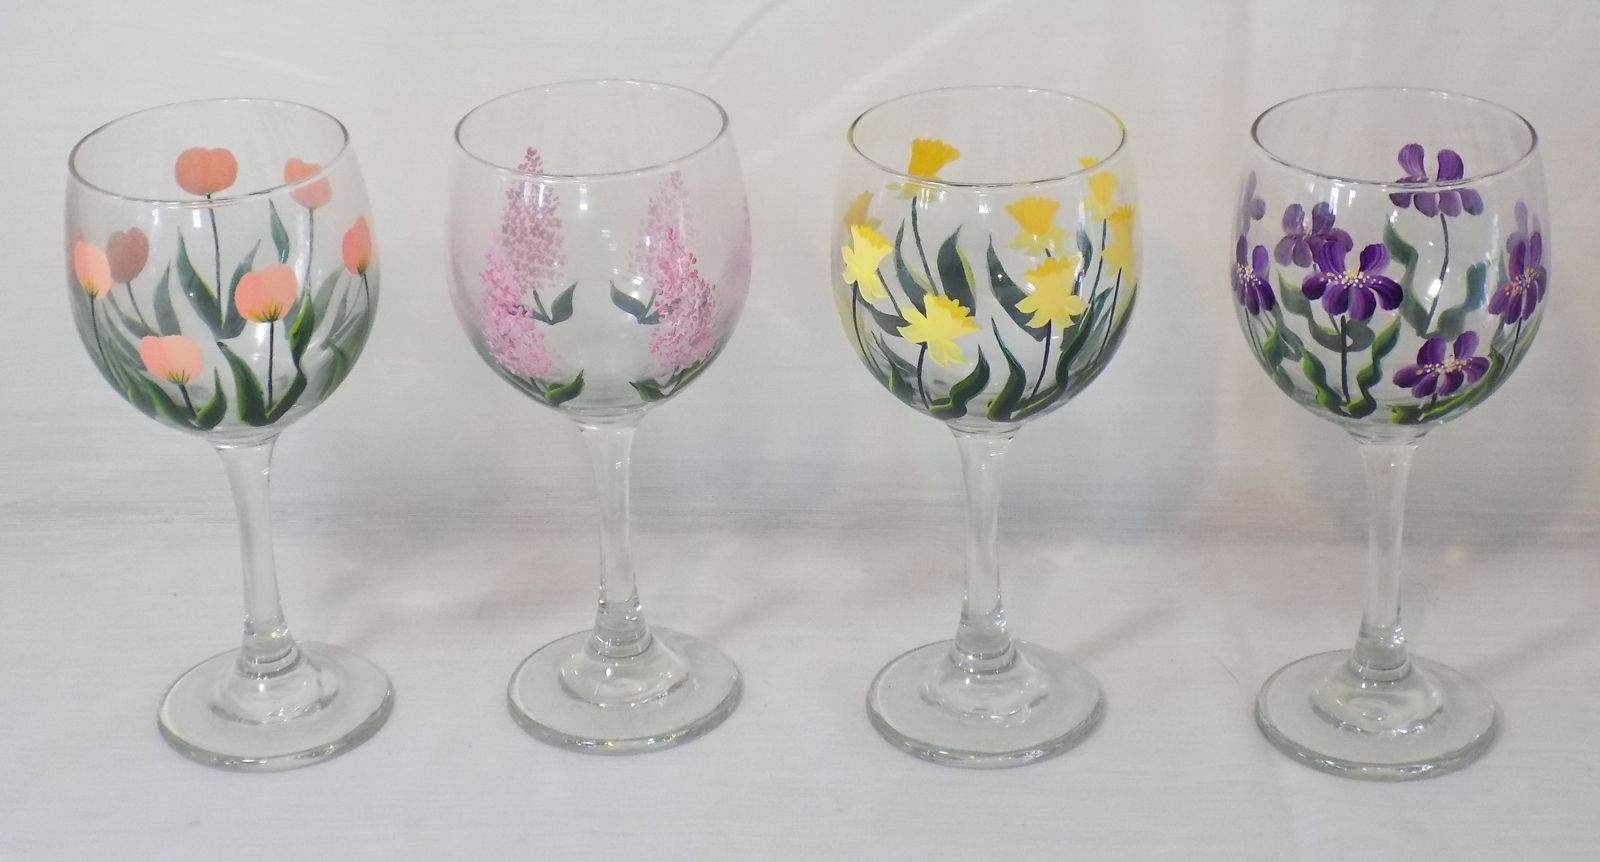 Set of 4 Hand Painted Wine Glasses  with Spring Flowers - Pretty